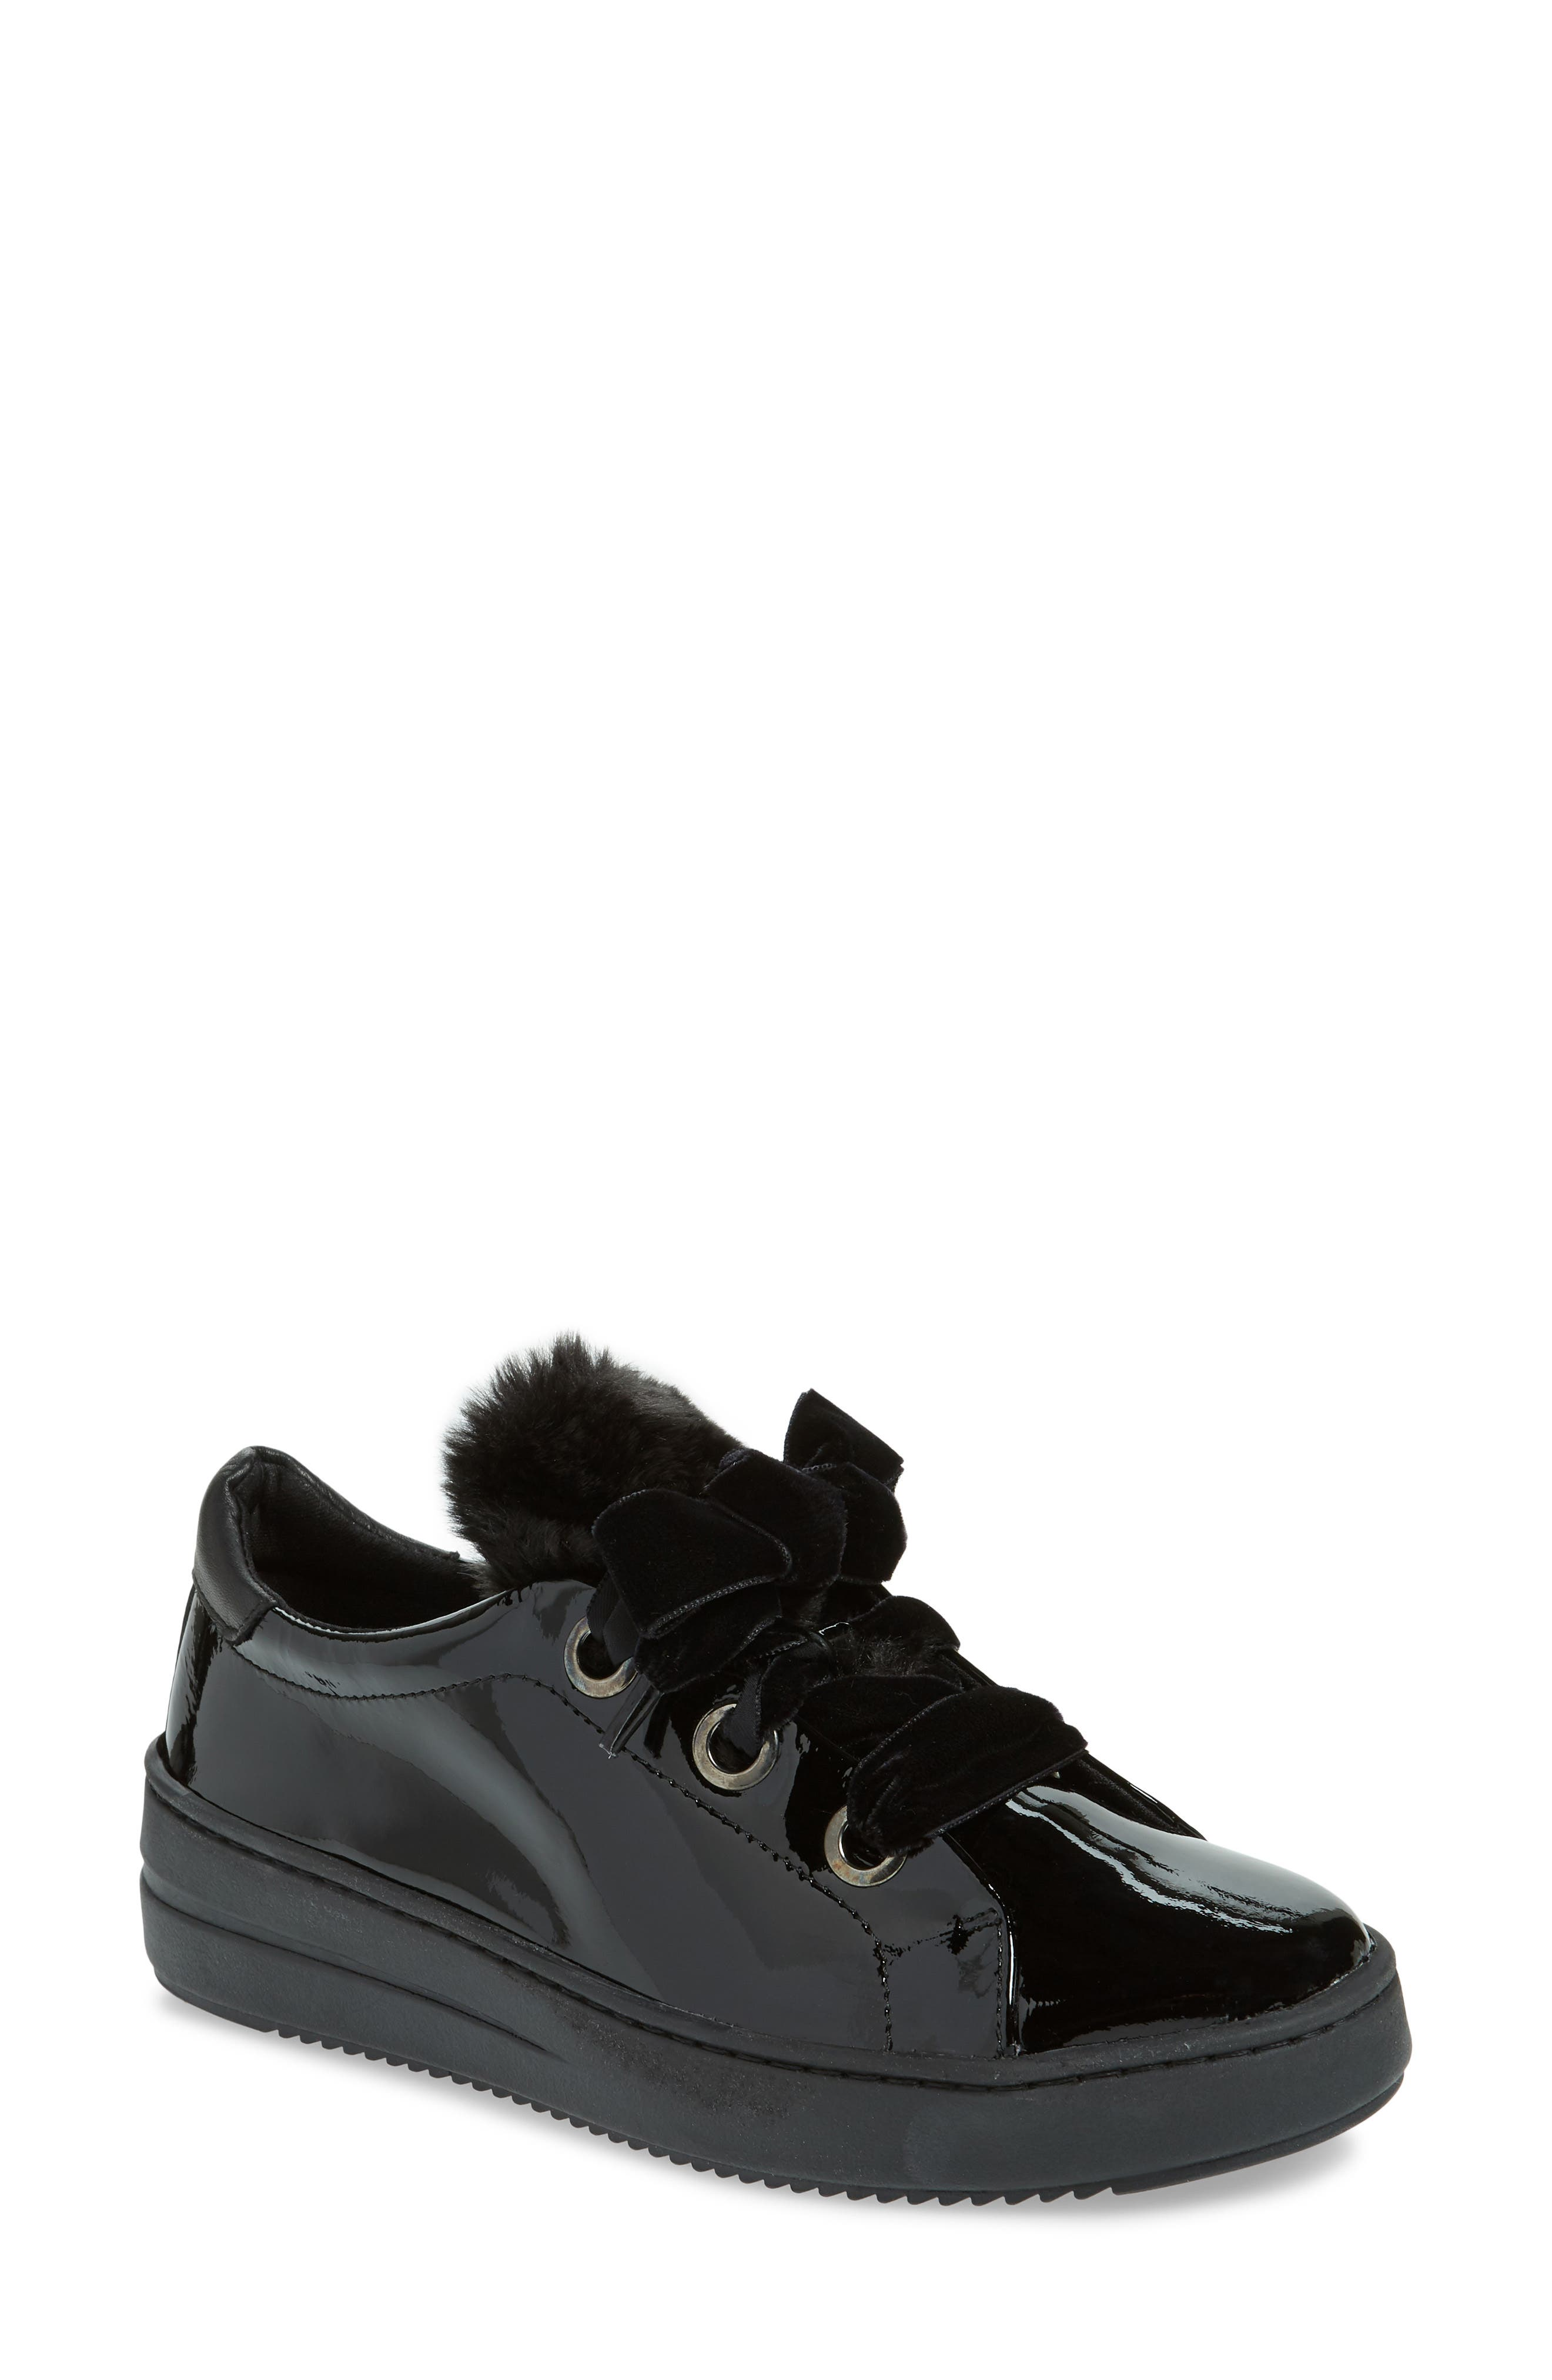 Groove Faux-Shearling Trim Sneaker,                             Main thumbnail 1, color,                             BLACK PATENT LEATHER